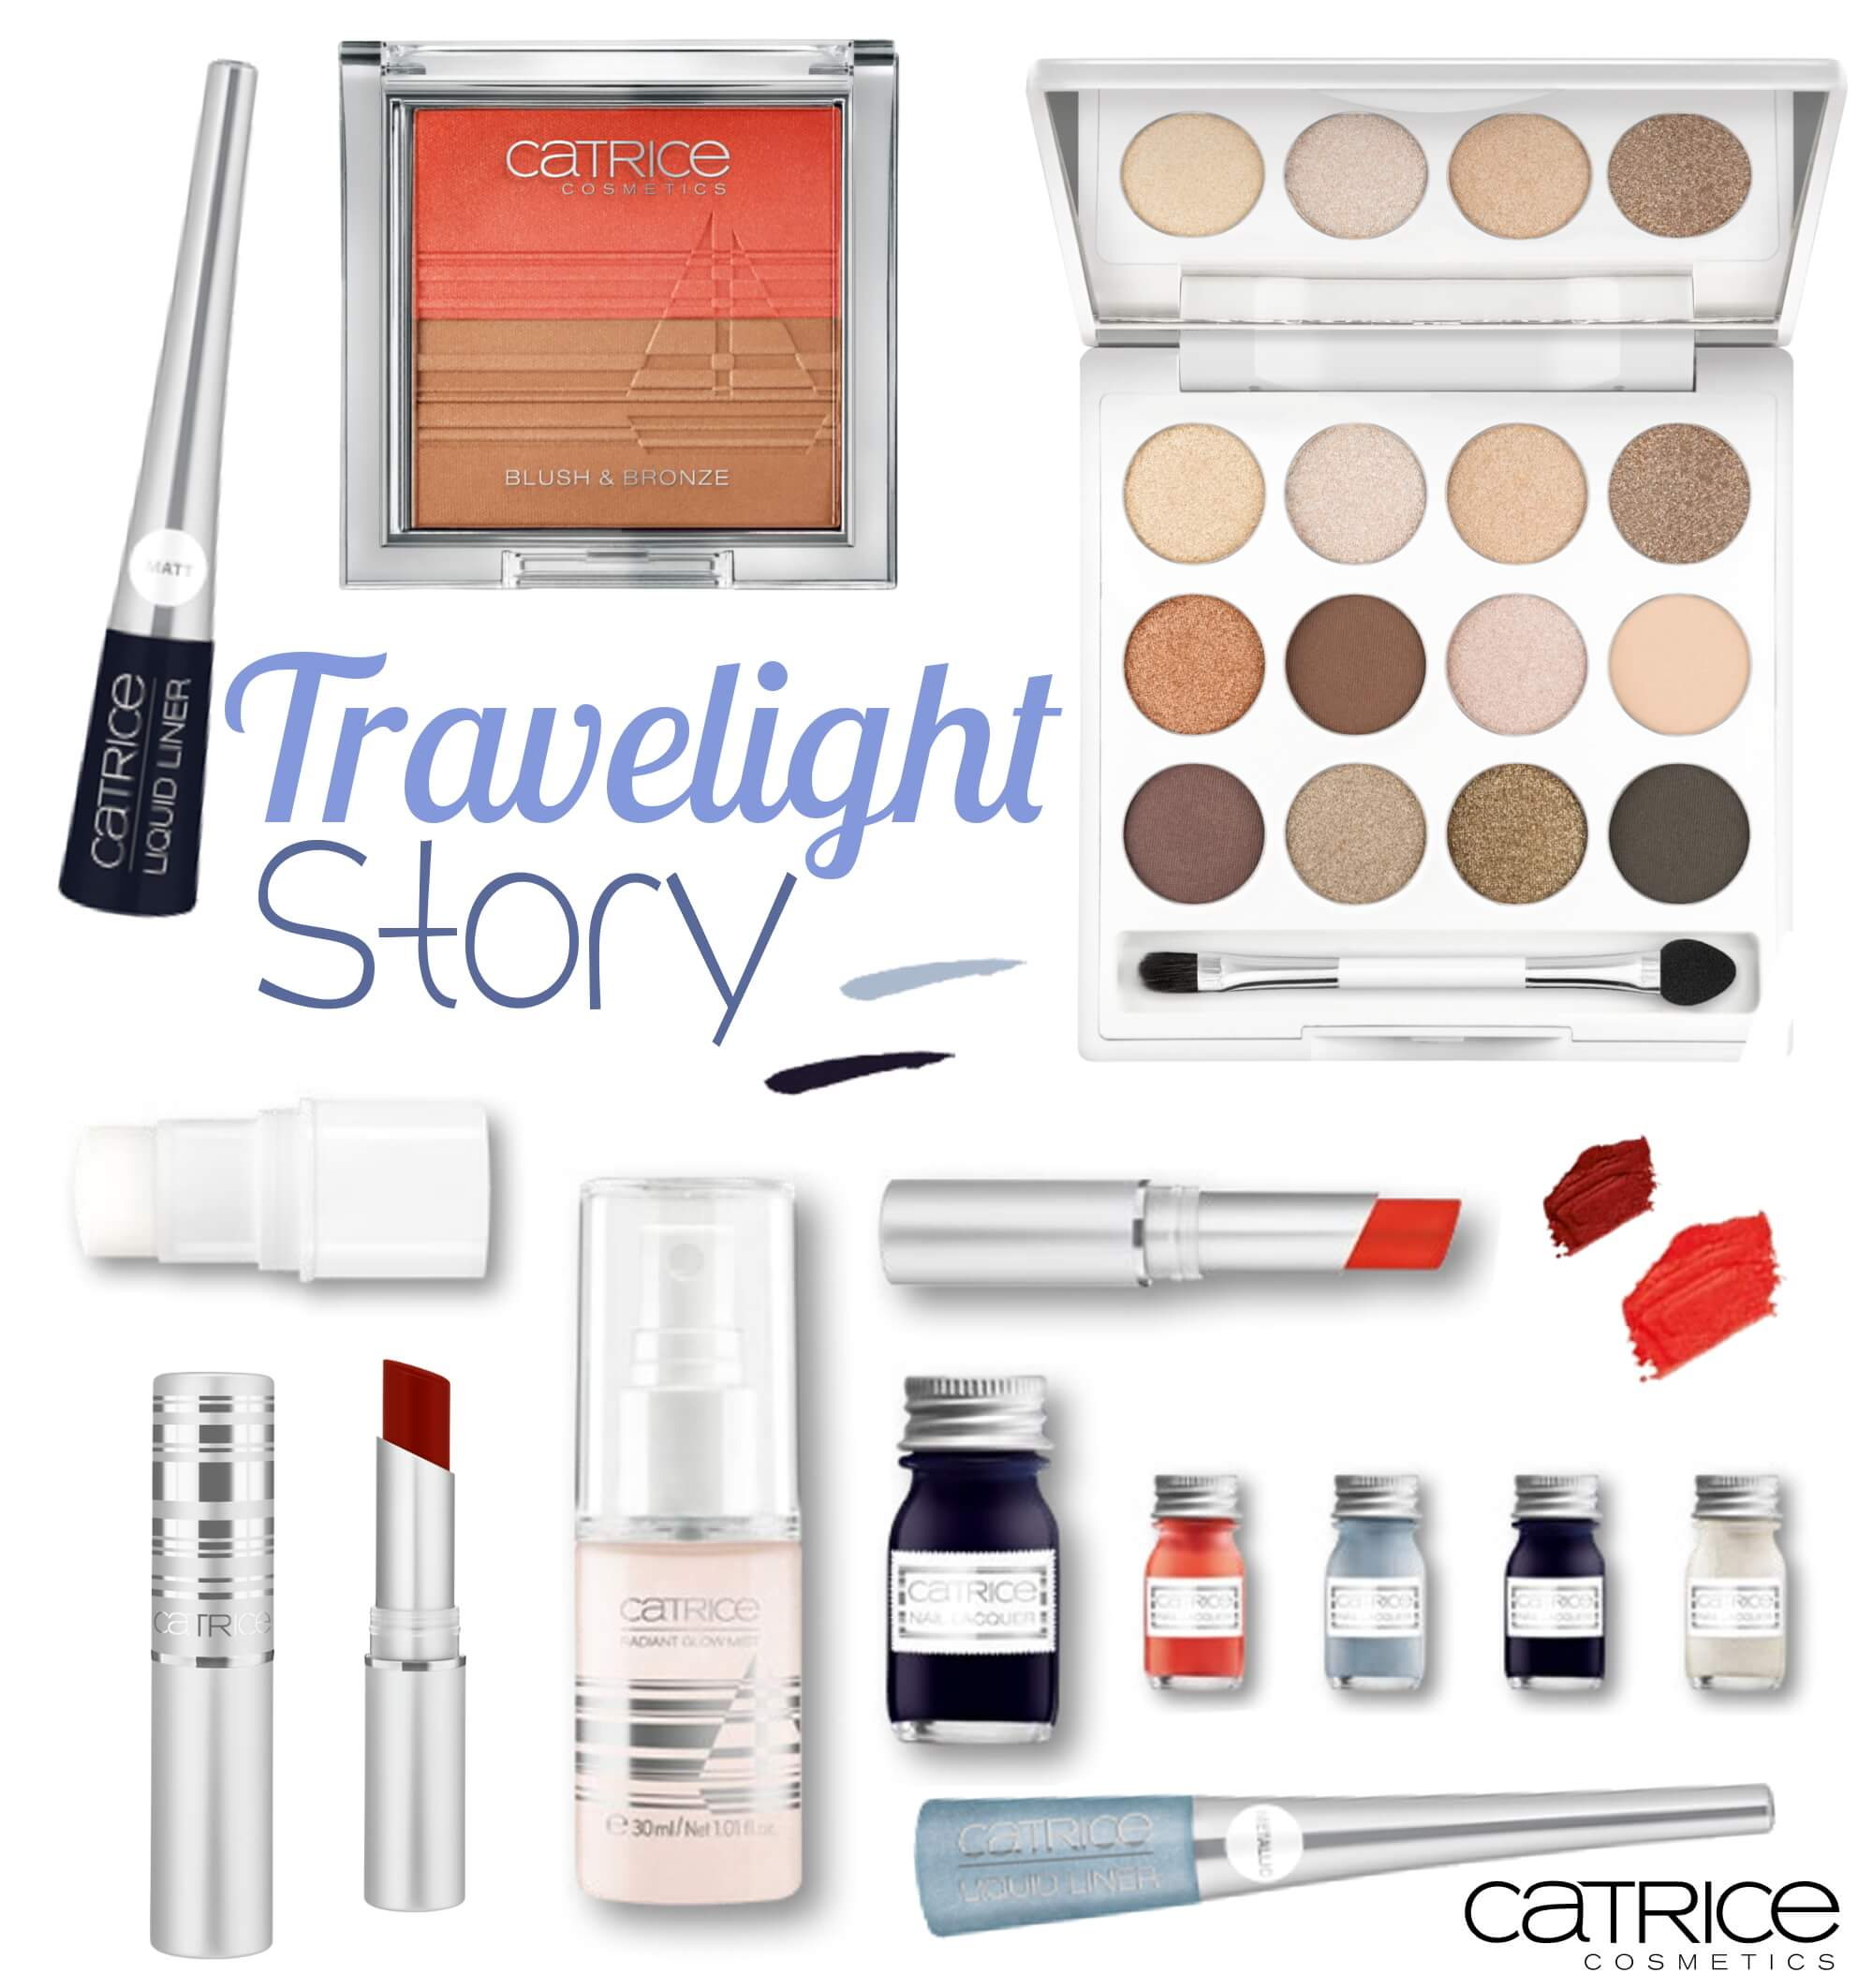 Travelight Story Limited Edition Collage Catrice tantedine